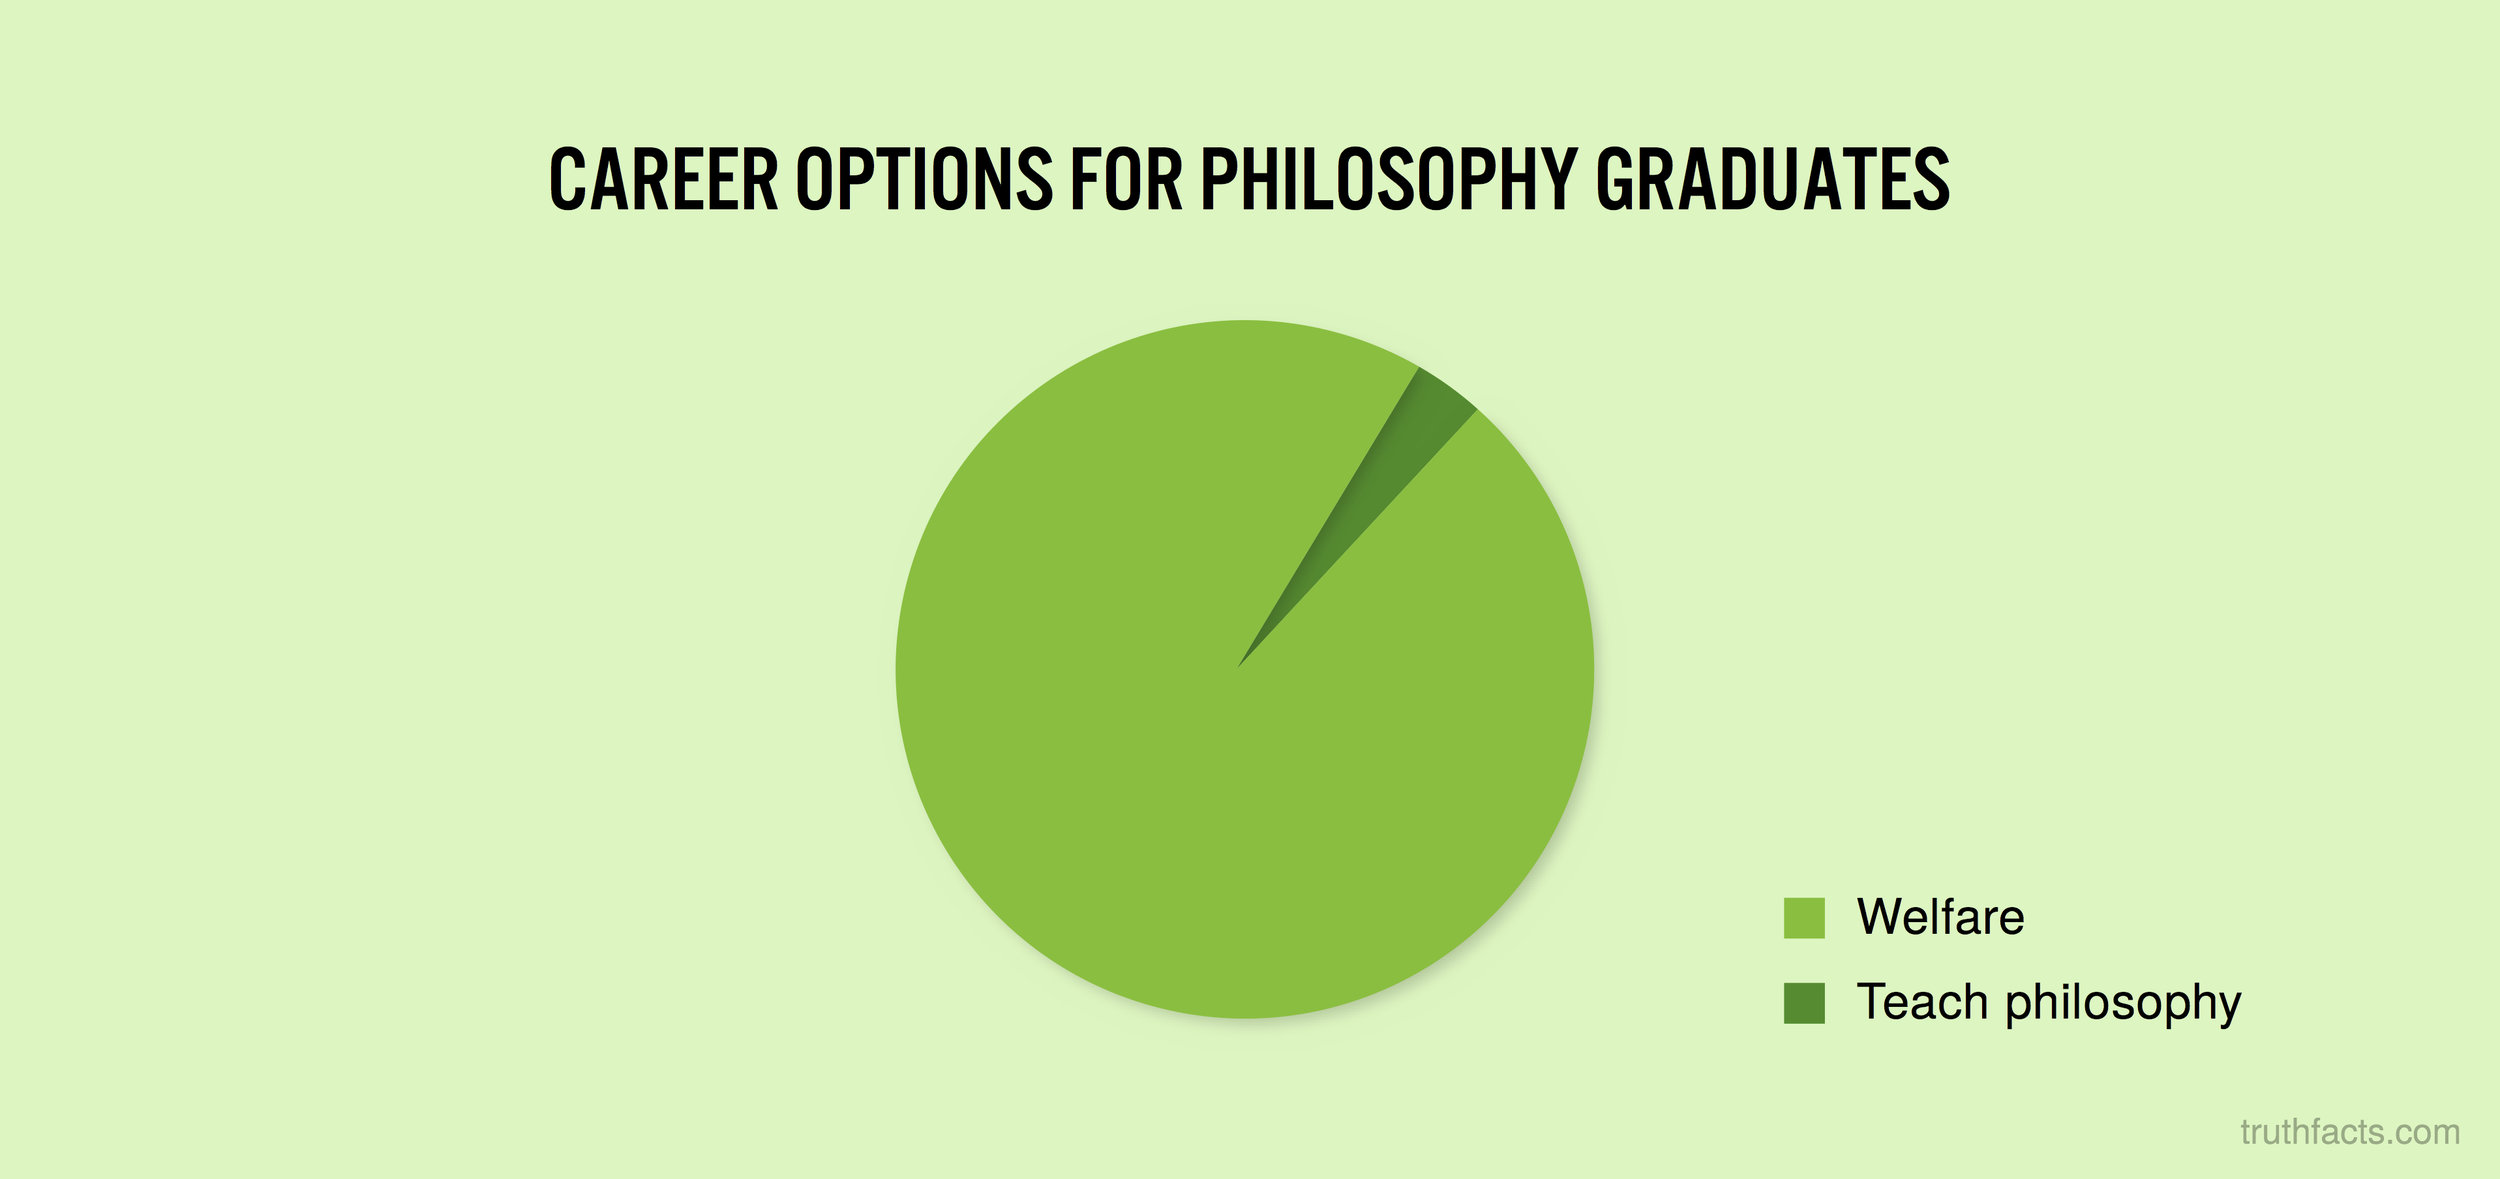 Career options for philosophy graduates